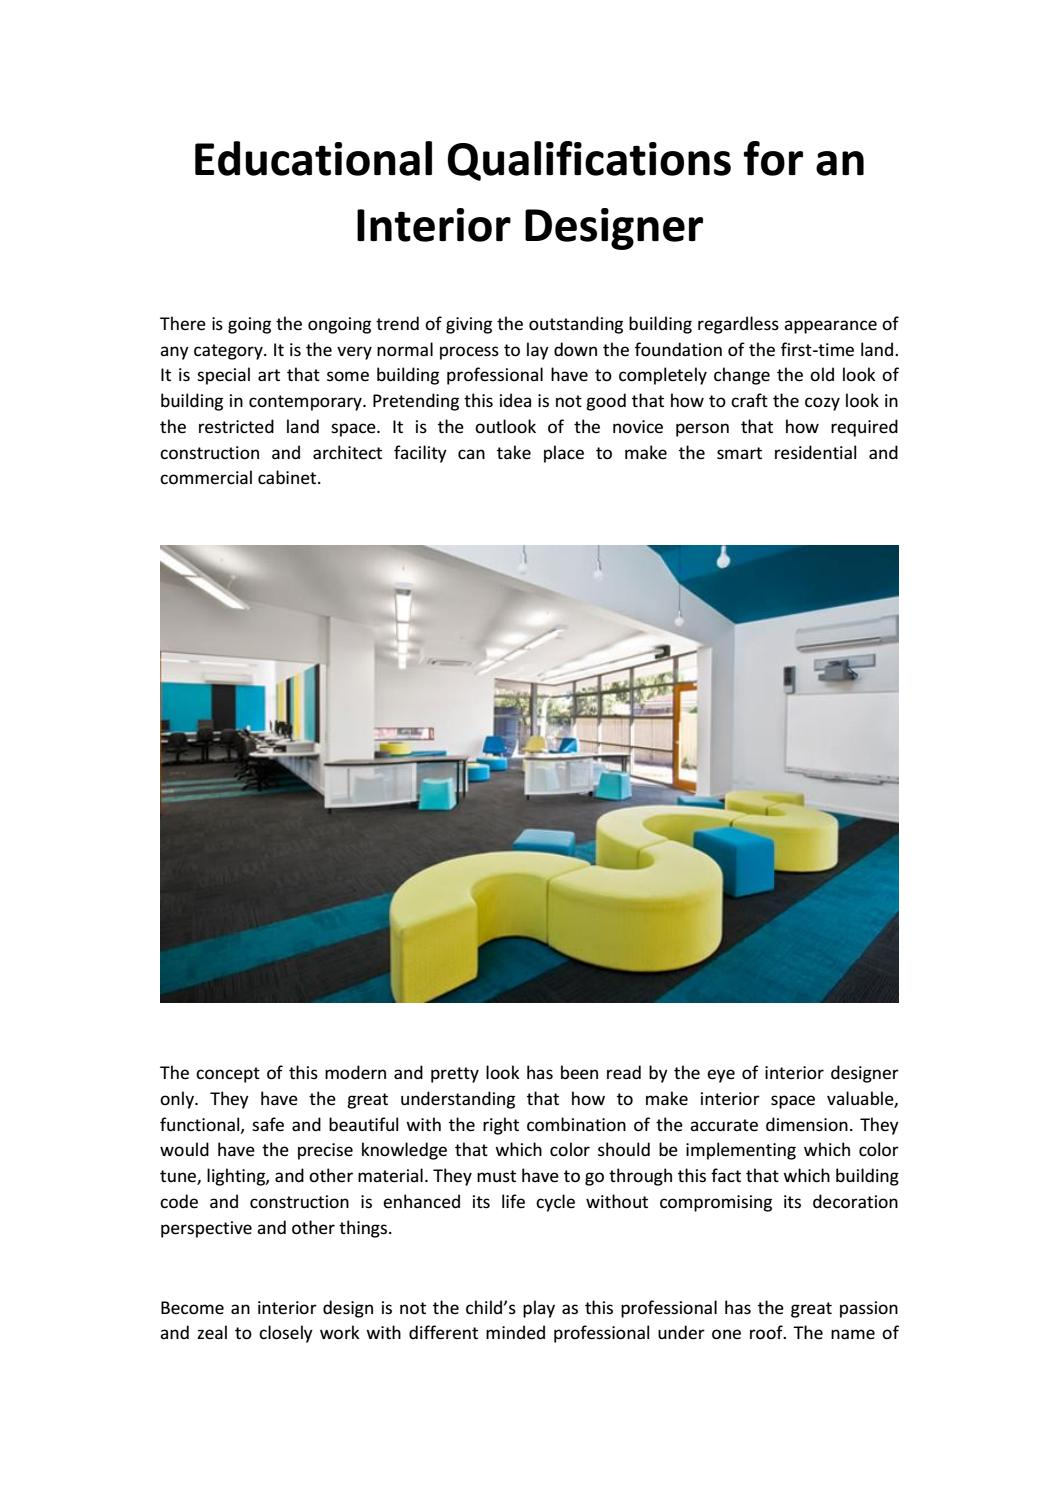 Educational Qualifications For An Interior Designer By Lisaadelhifashion Issuu